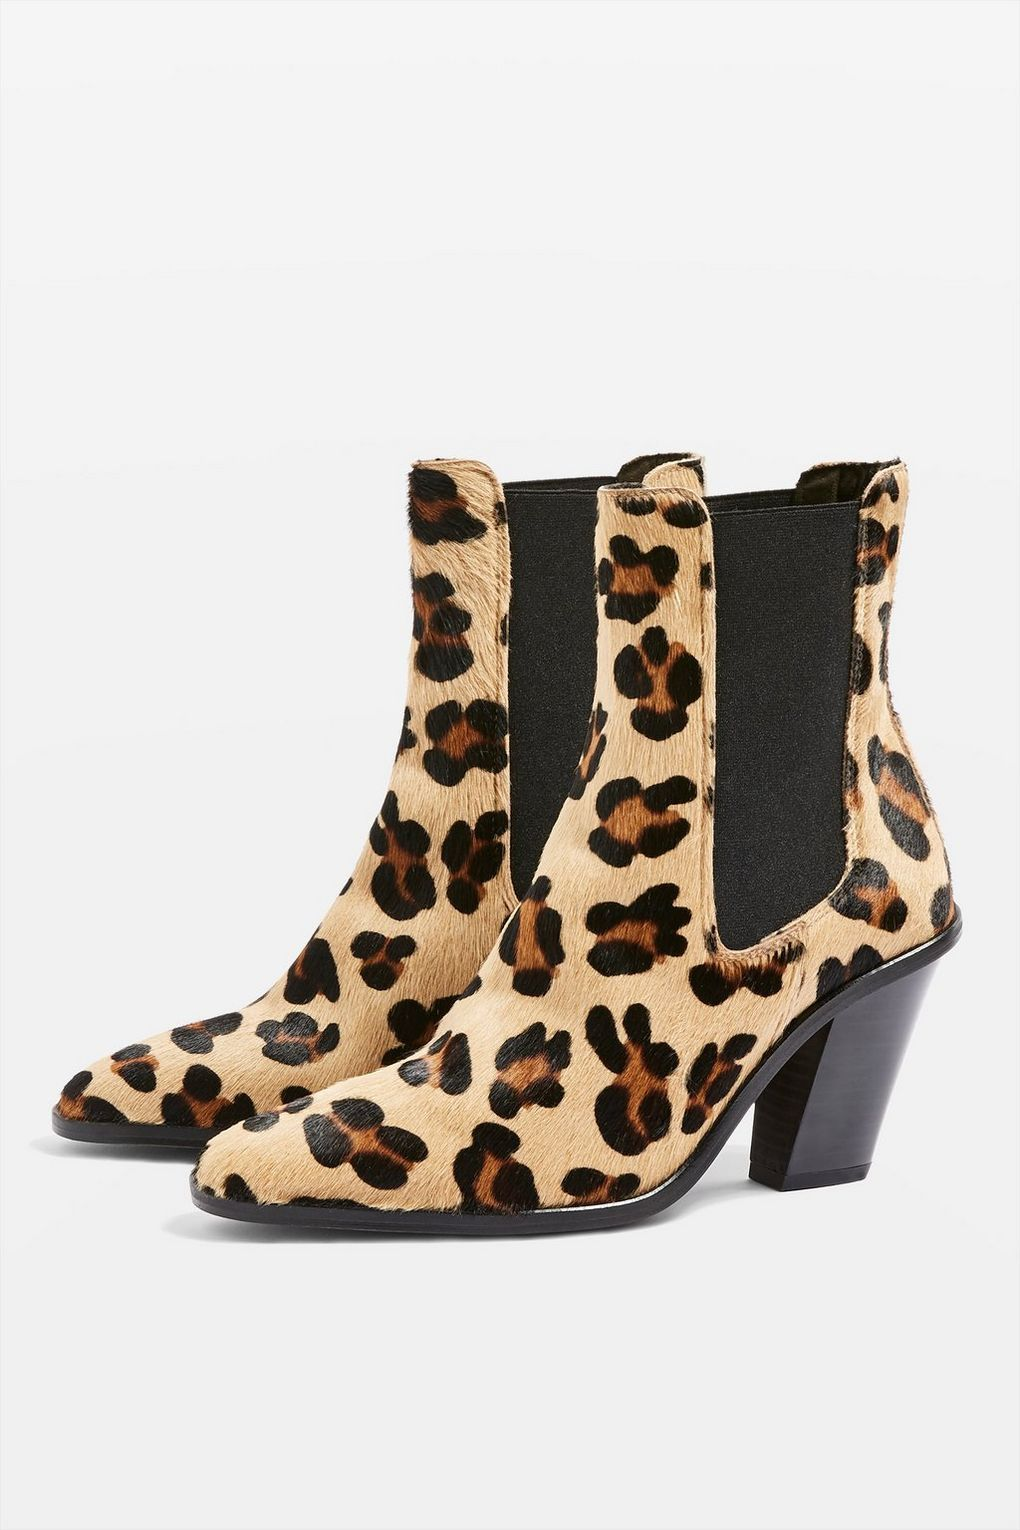 85d7e48f9b7d Morty Leopard Print Ankle Boots - Trend: Animal Print - Clothing - Topshop  Europe